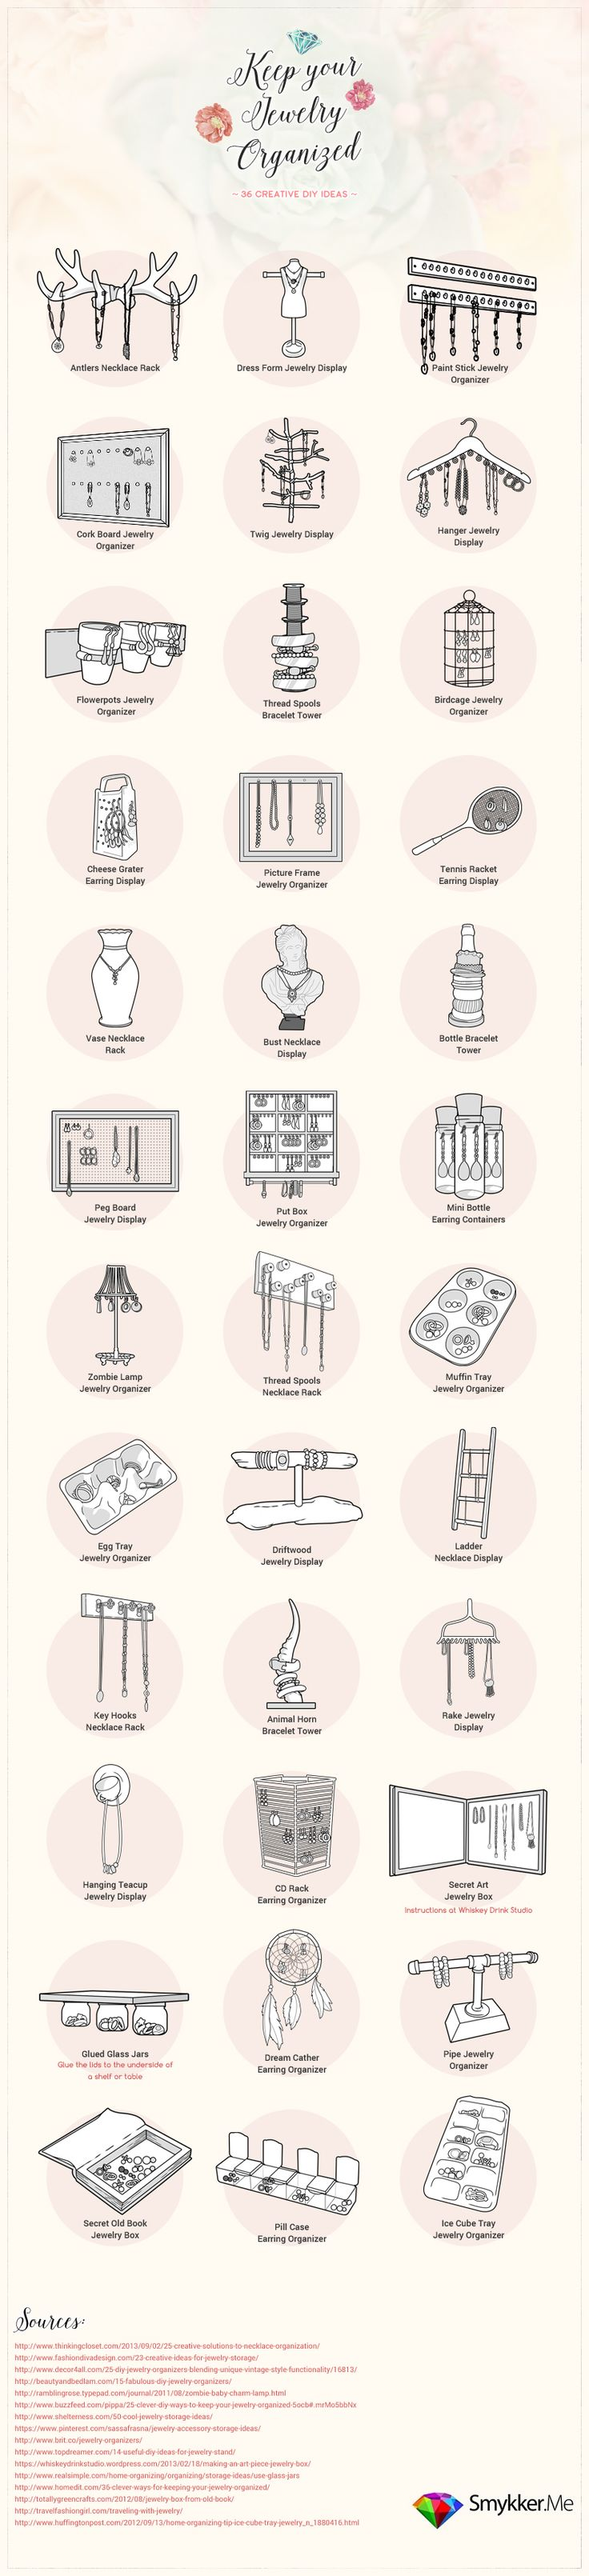 36 Creative Ways to Organize Jewelry - most of these can be done with things I already have around the house! @Remodelaholic